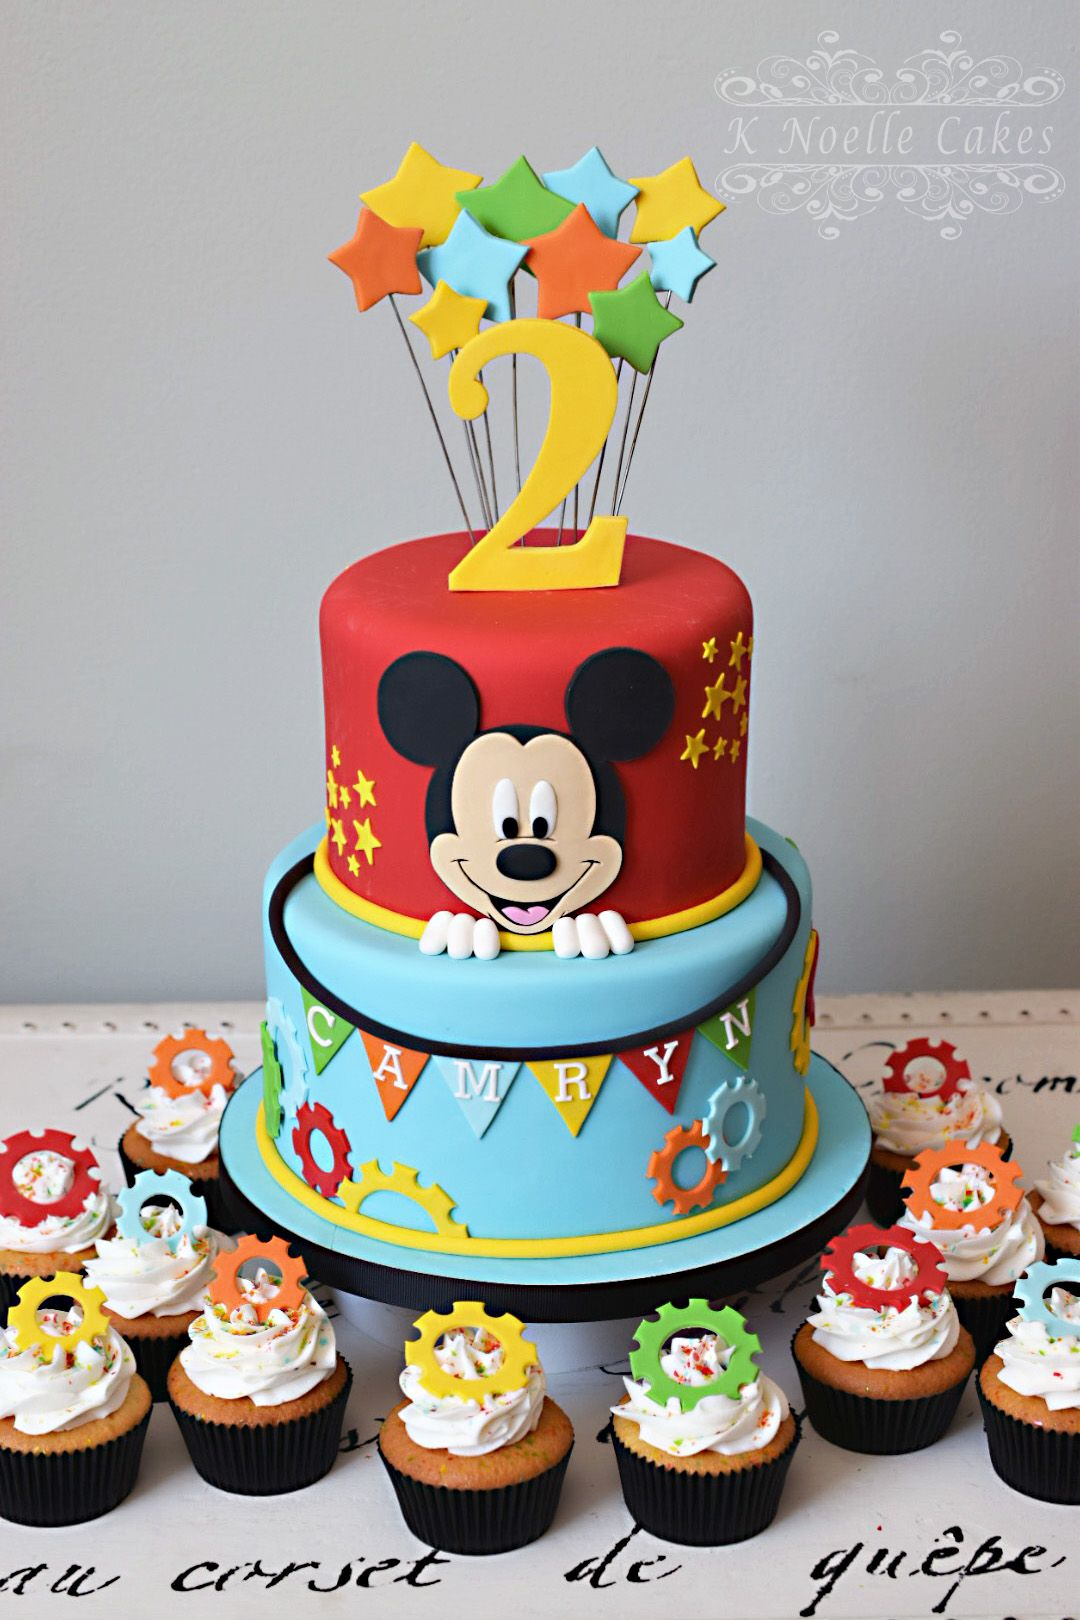 Mickey Mouse Clubhouse theme cake by K Noelle Cakes Cakes by K